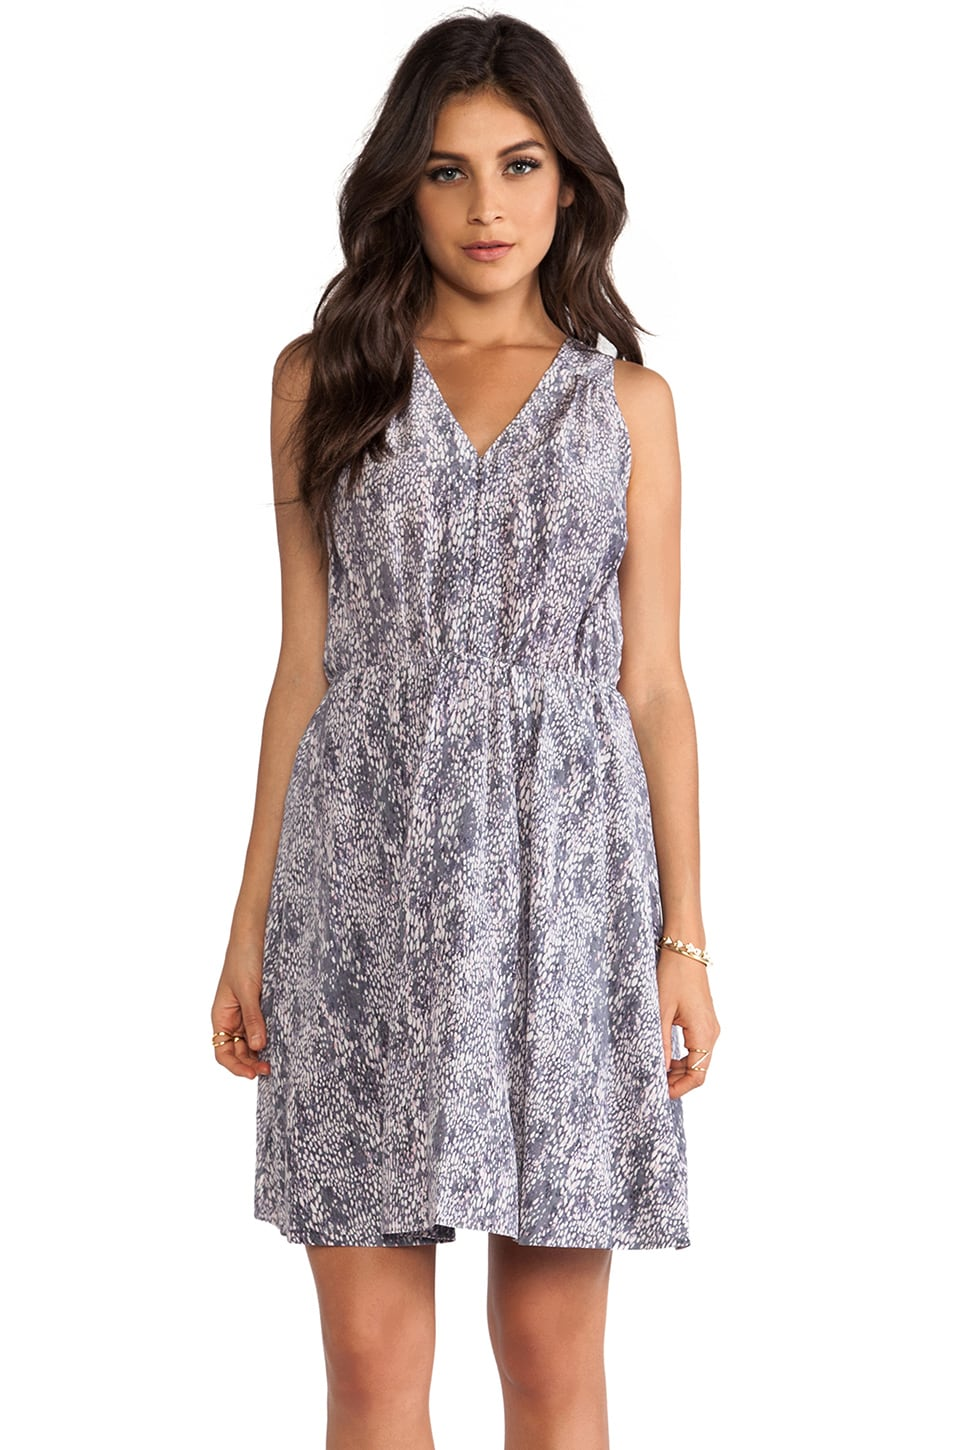 Rebecca Taylor Summer Rain Dress in Graphite Combo